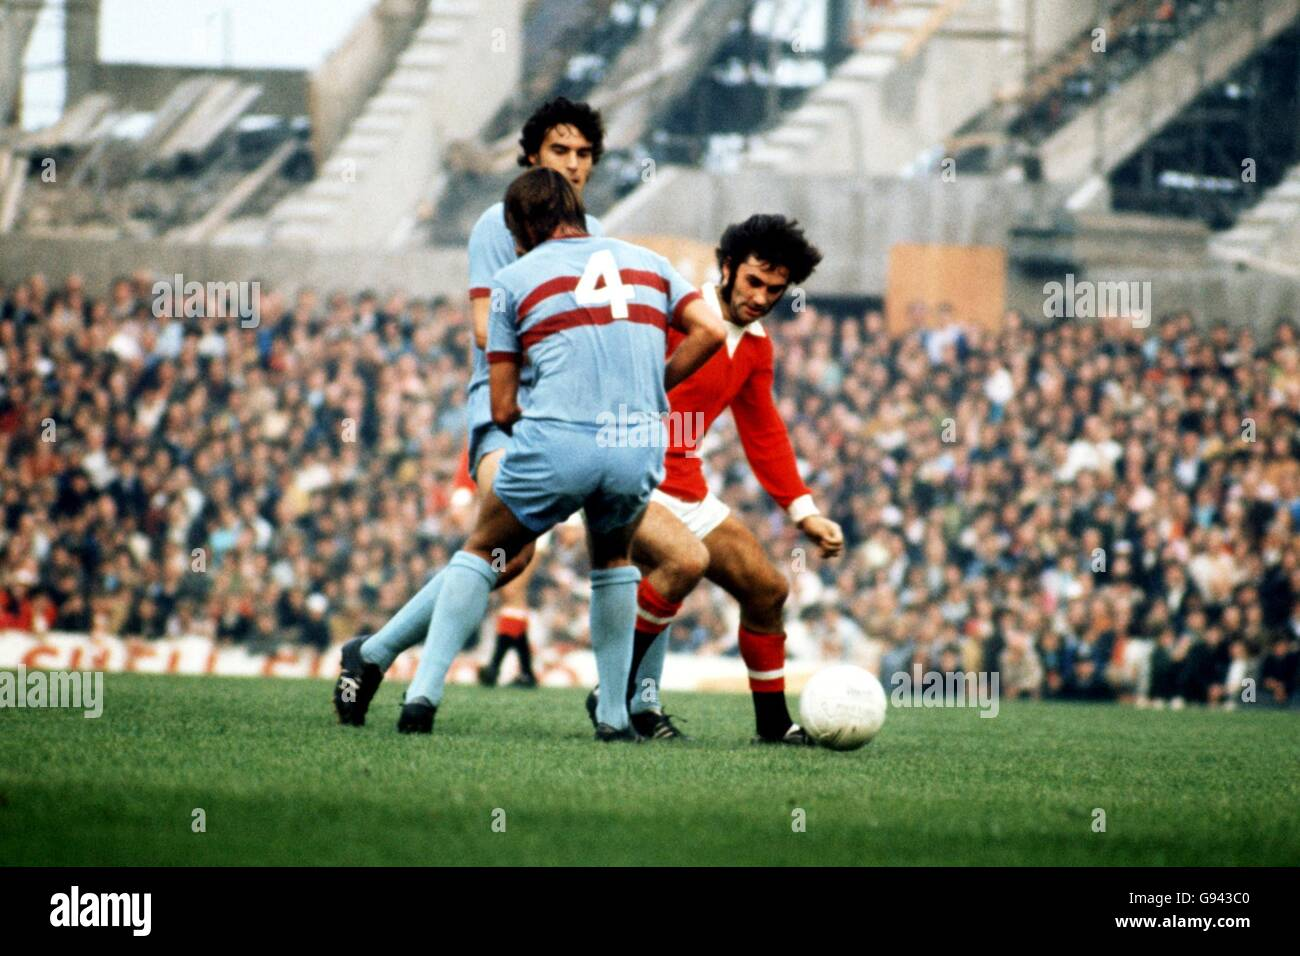 Soccer Football League Division One Manchester United V West Ham Stock Photo Alamy